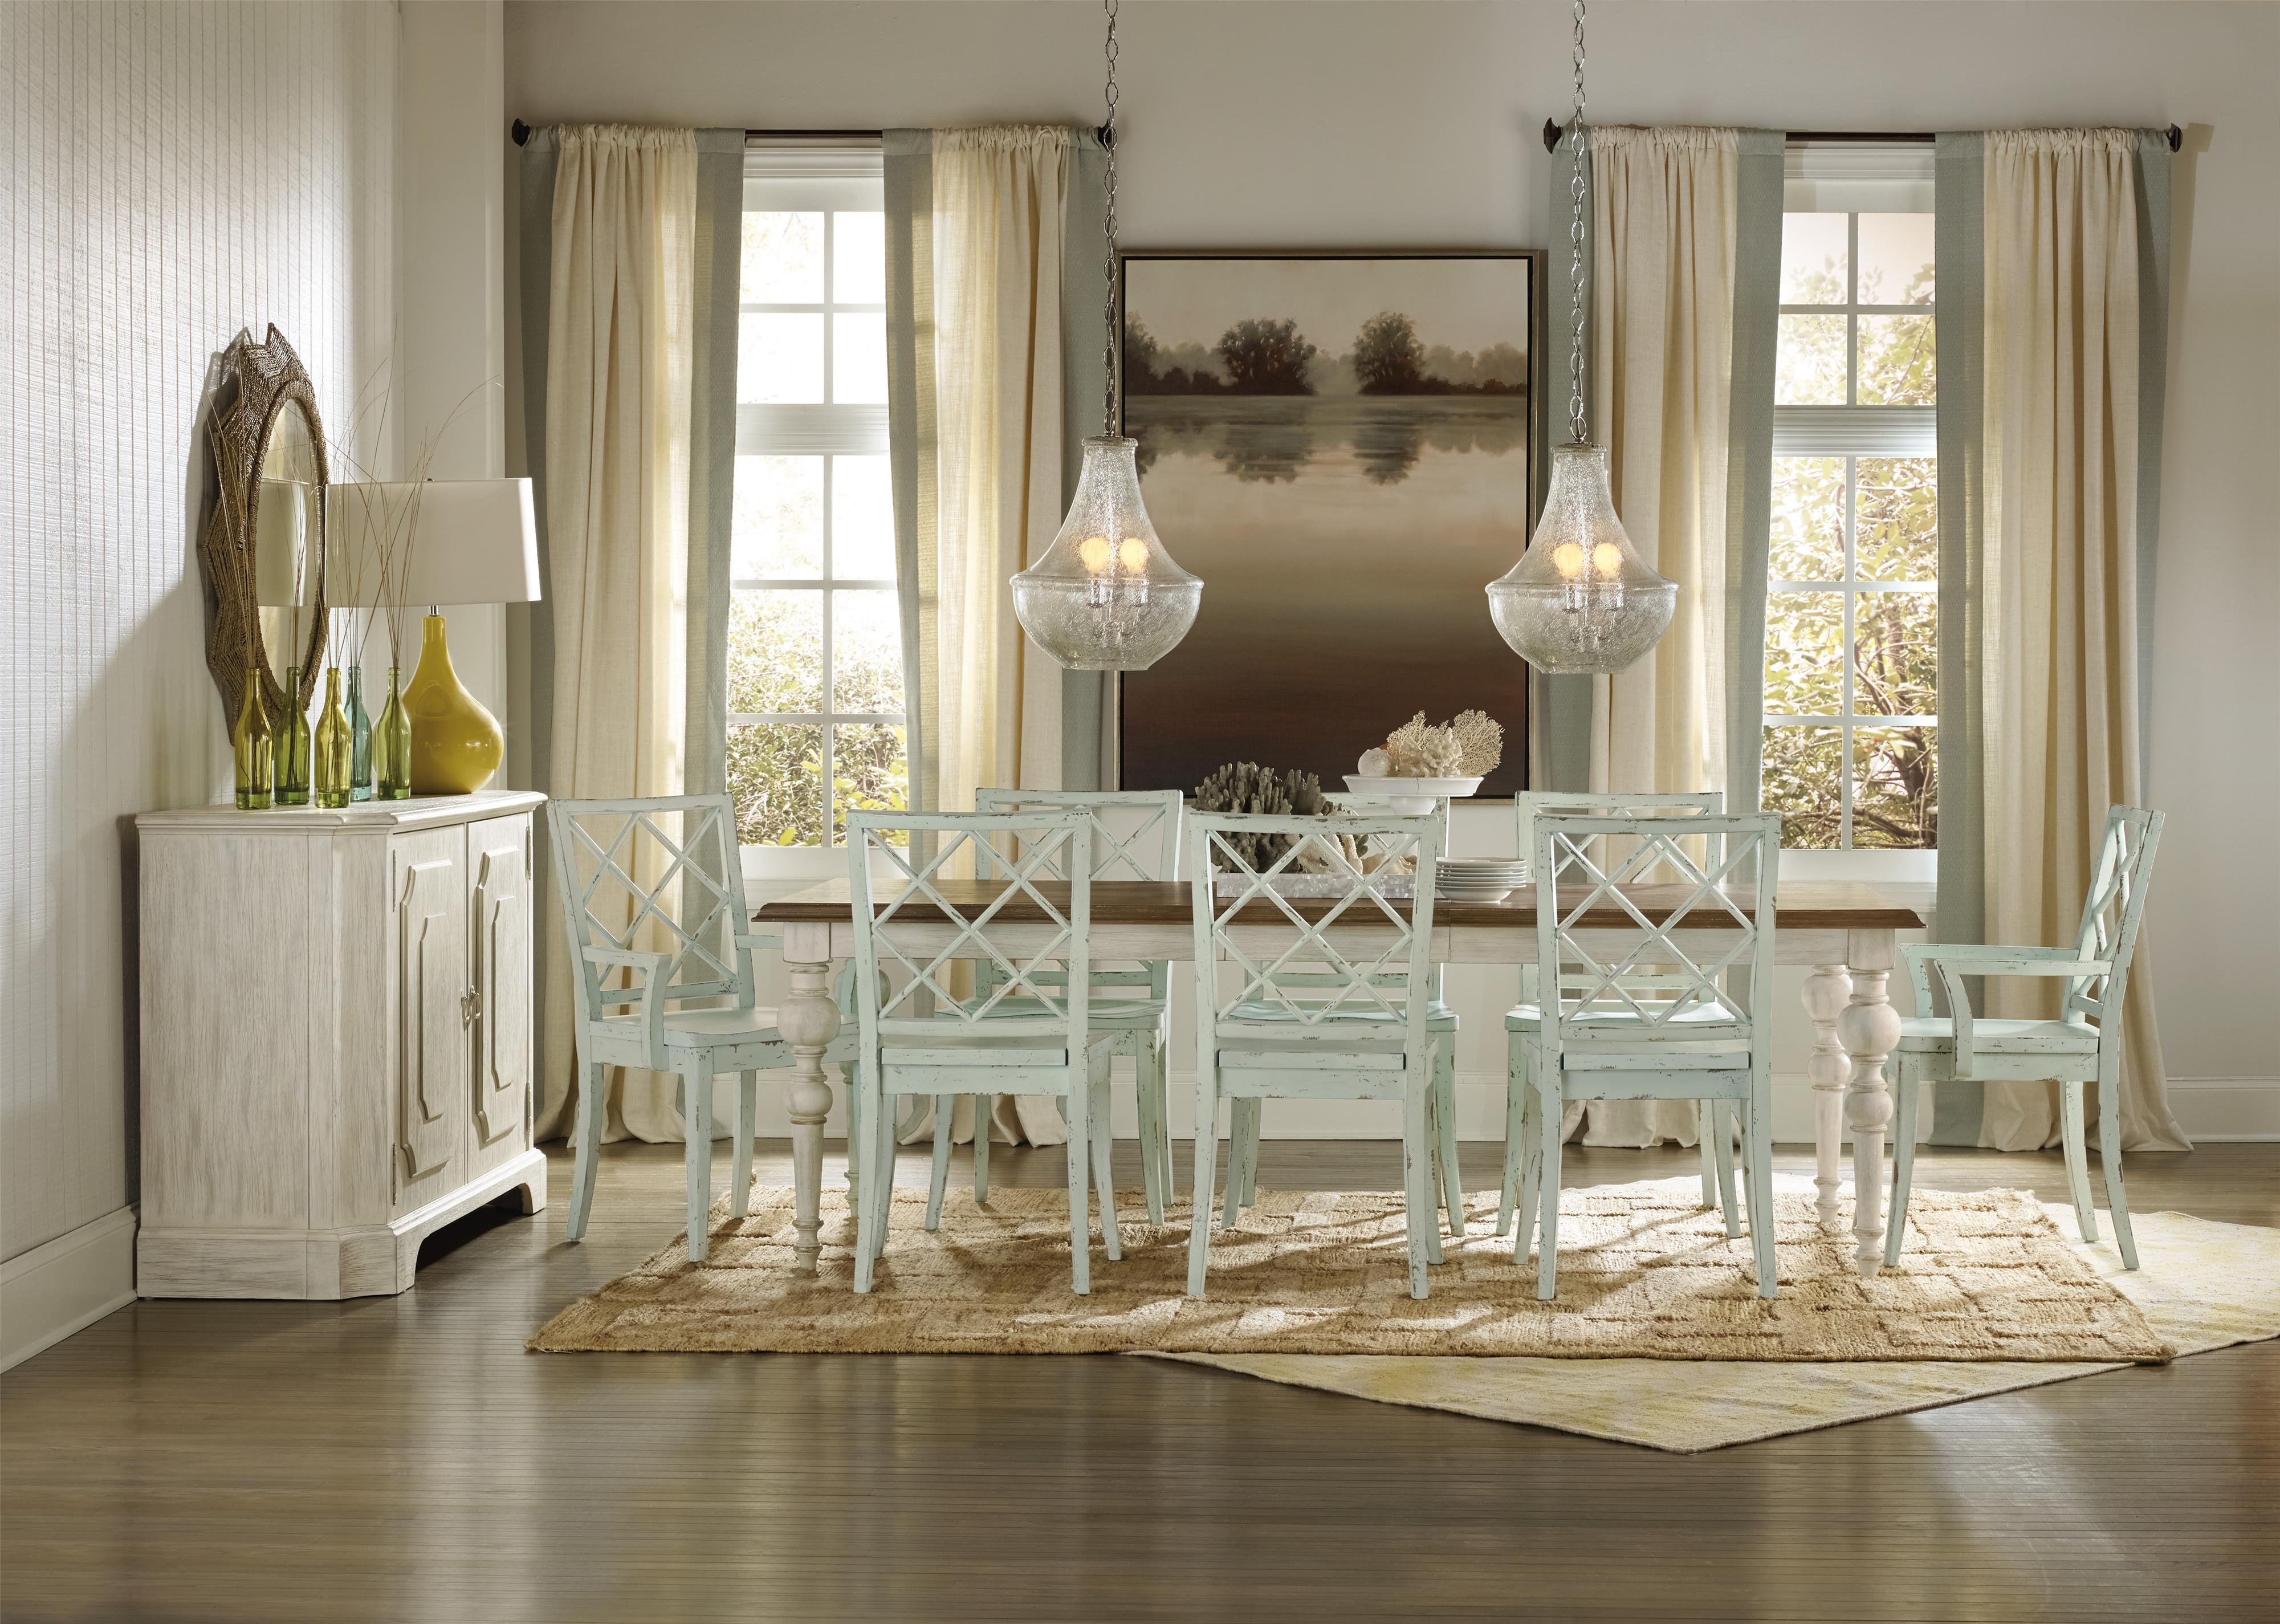 Hooker Furniture Sunset Point Formal Dining Room Group - Item Number: 5325 Dining Room Group 1